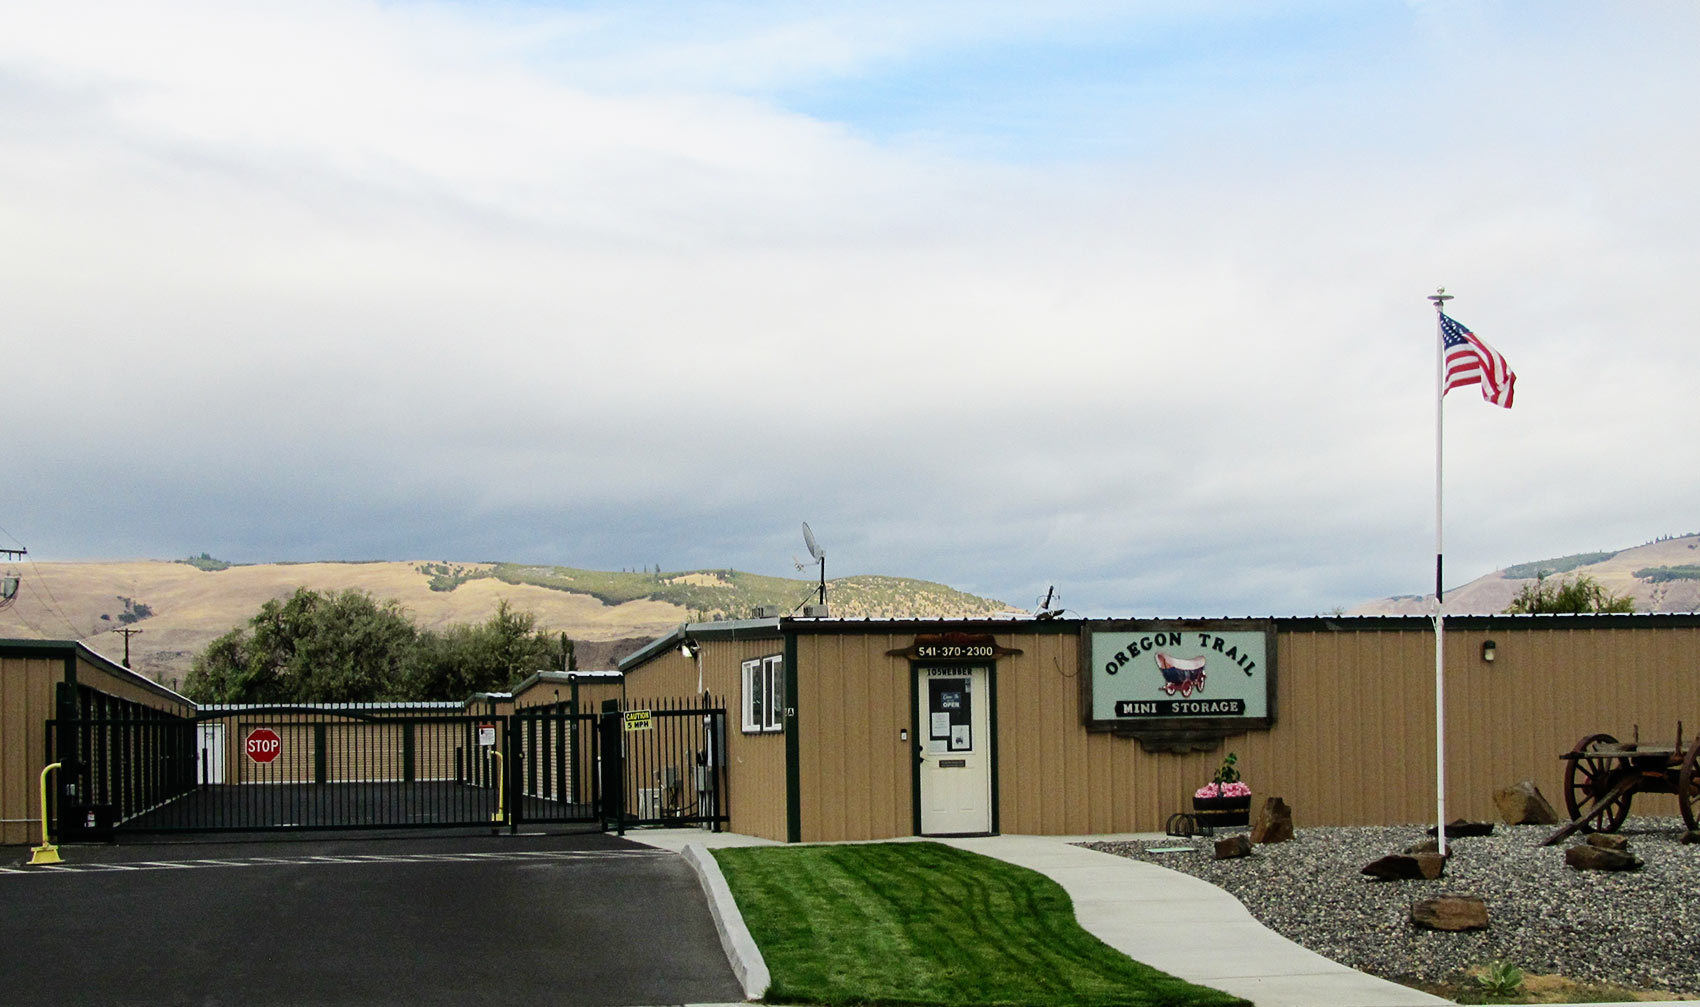 Serving storage needs in The Dalles and Columbia Gorge